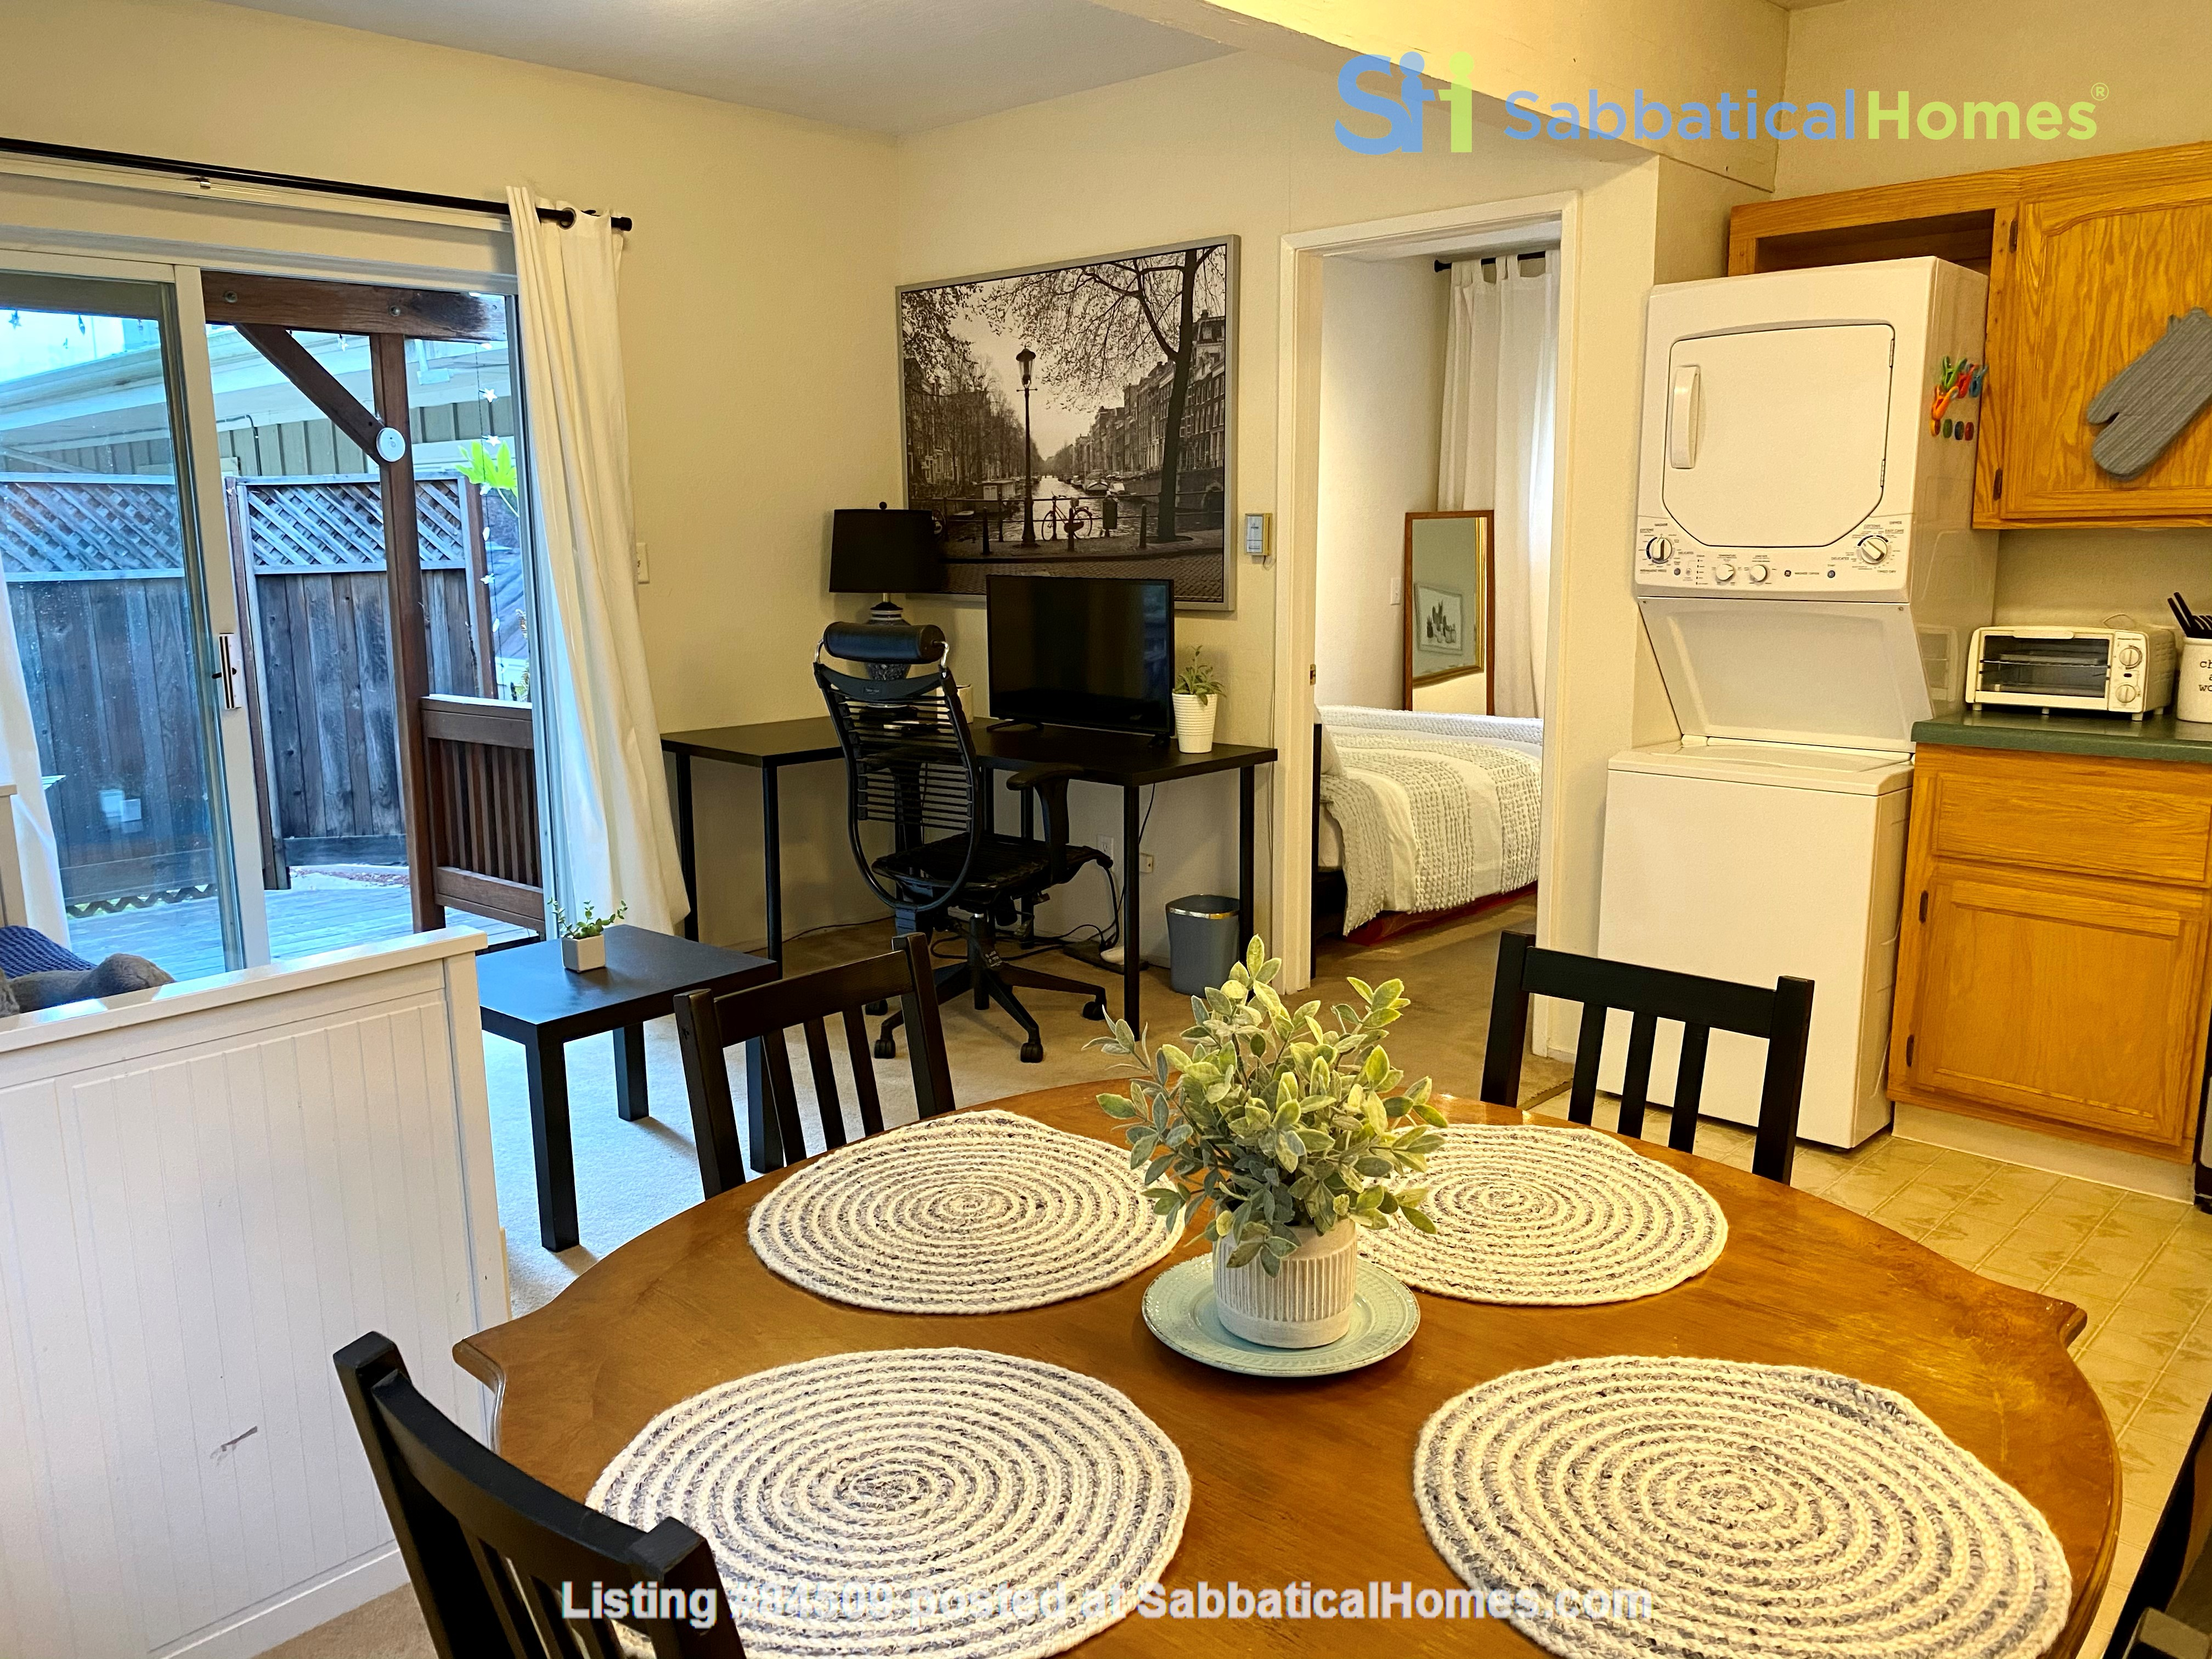 Charming, fully furnished 1BR apartment in Orinda Home Rental in Orinda, California, United States 4